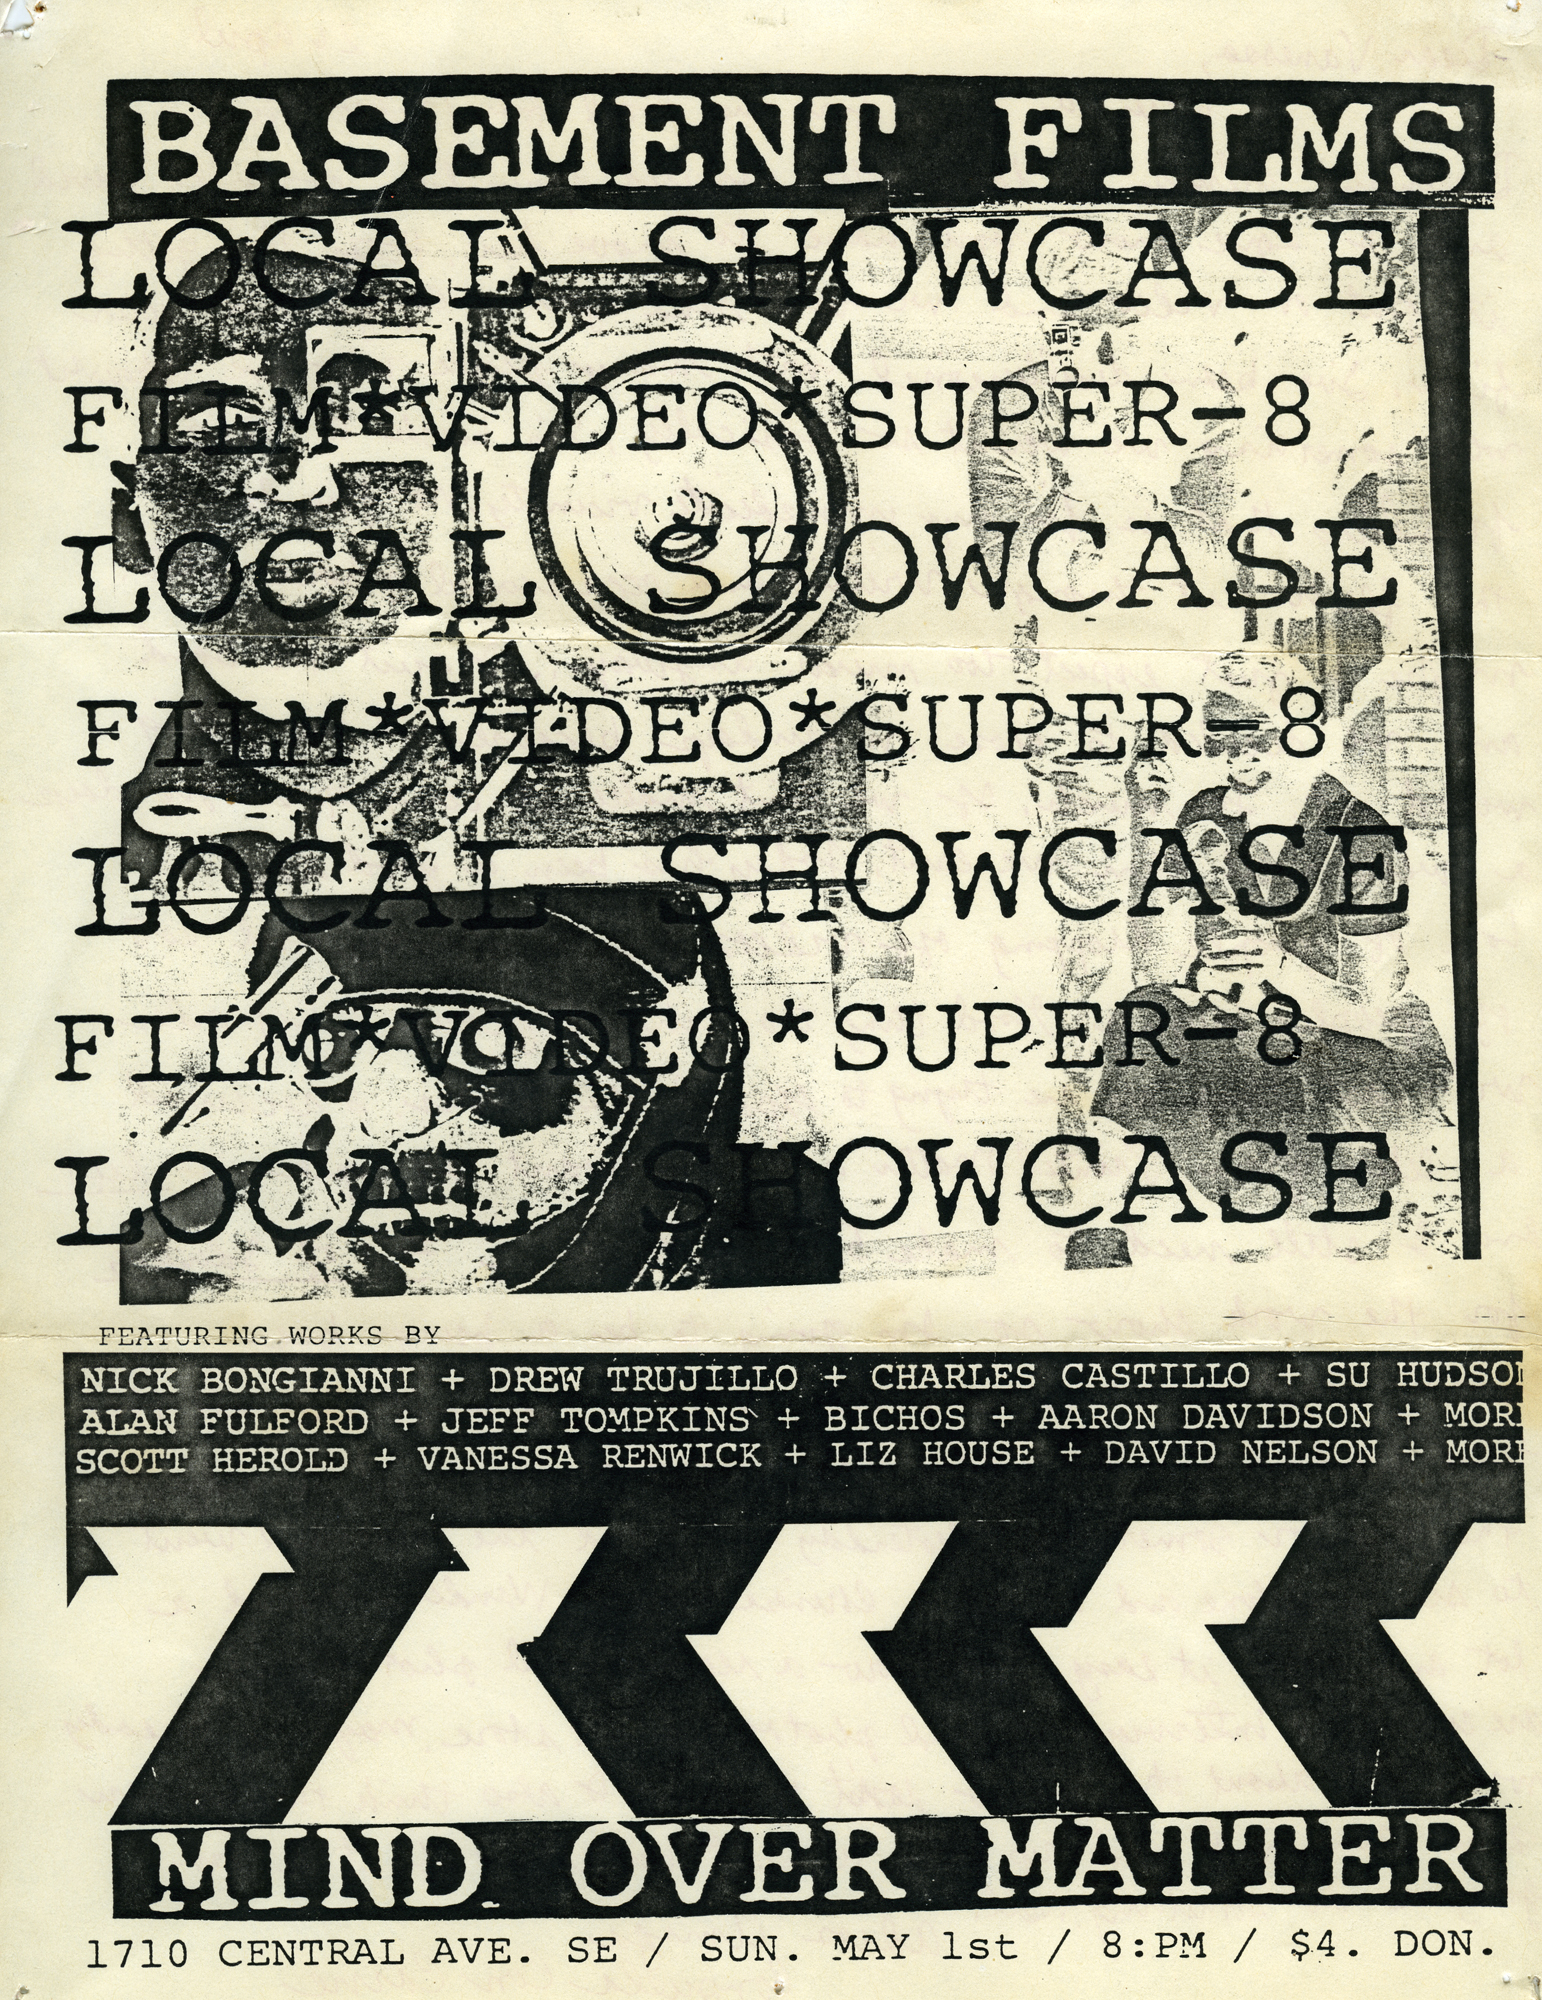 Poster by David Nelson